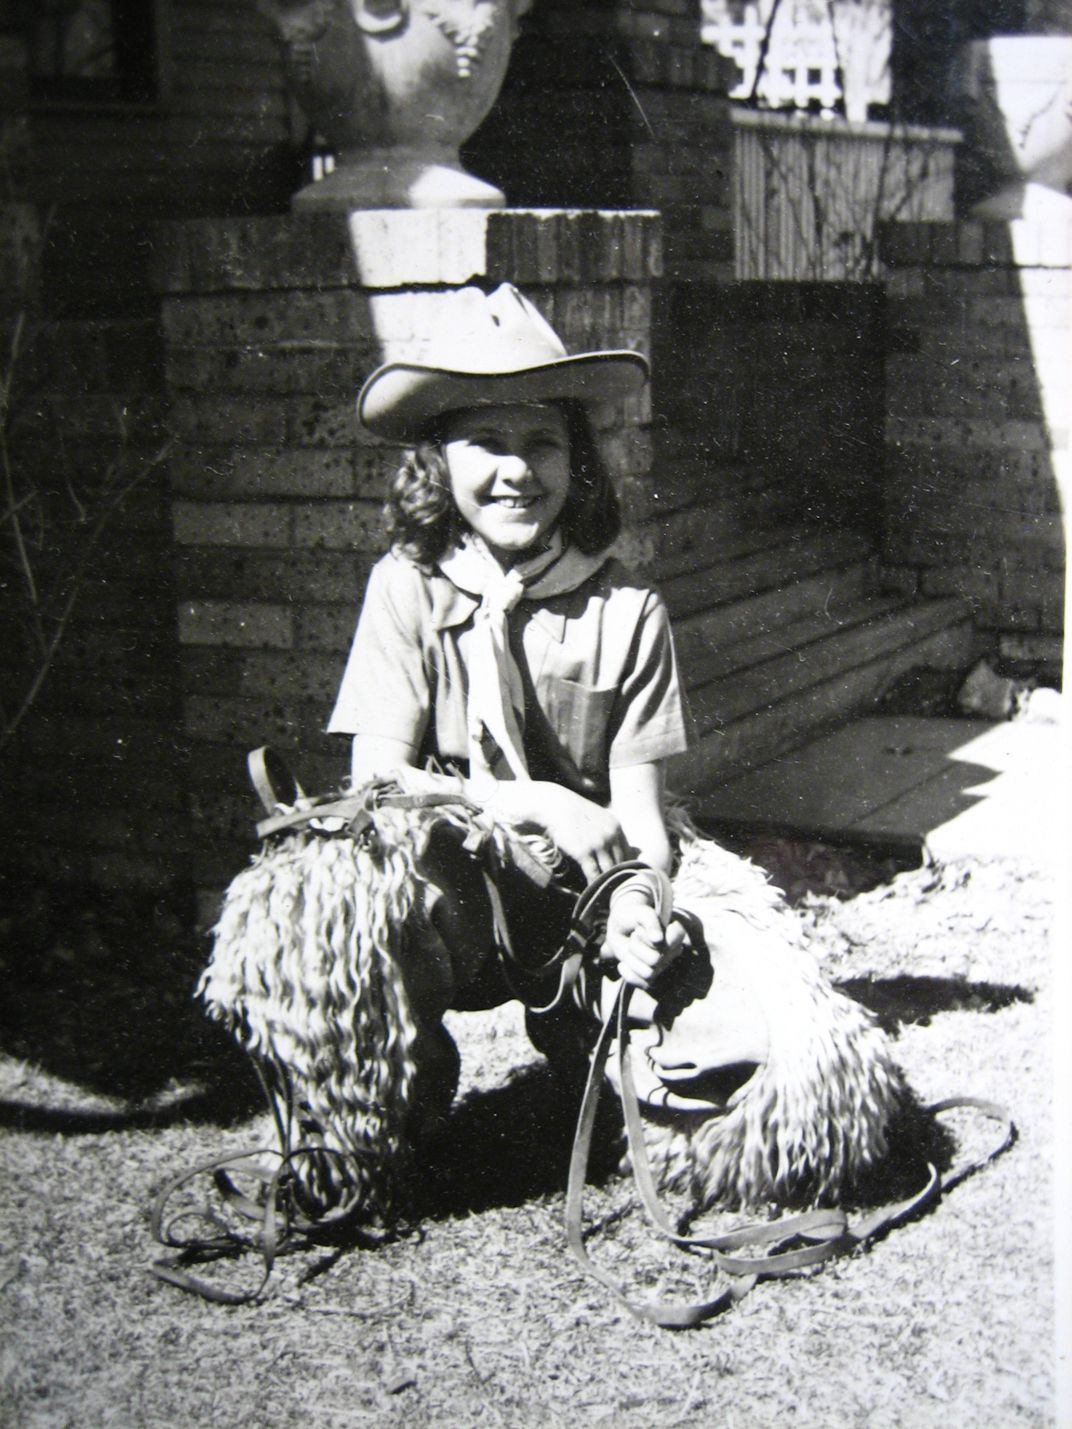 Young girl dressed as a cowgirl in black and white